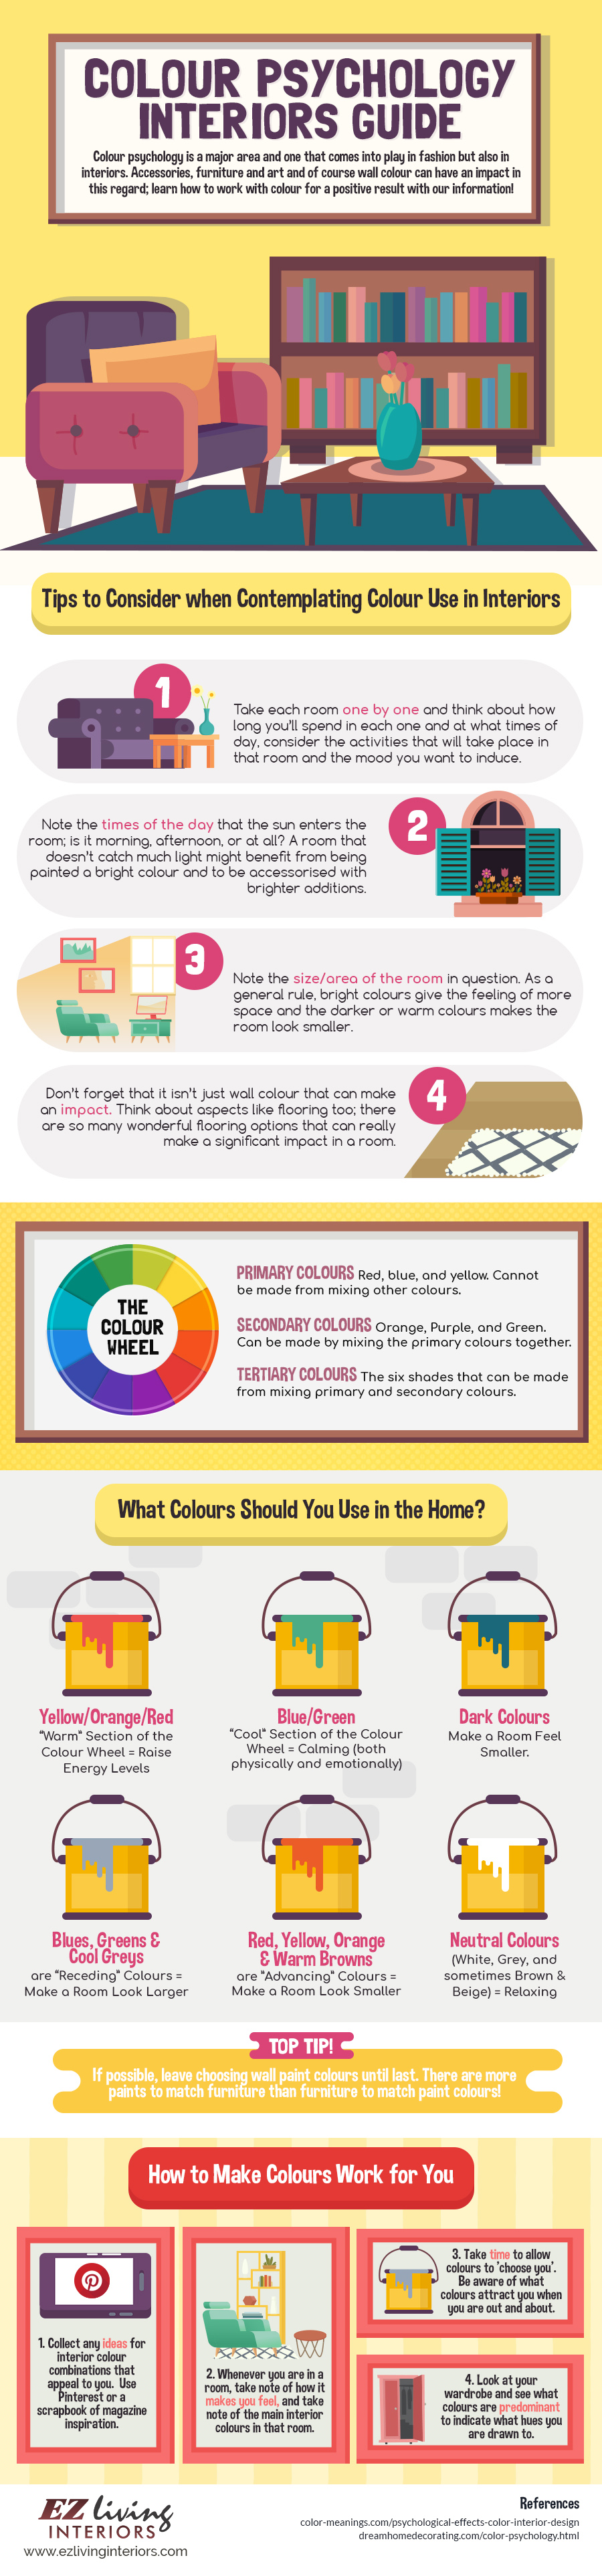 Color Psychology for the Home Staged4more School of Home Staging.jpg